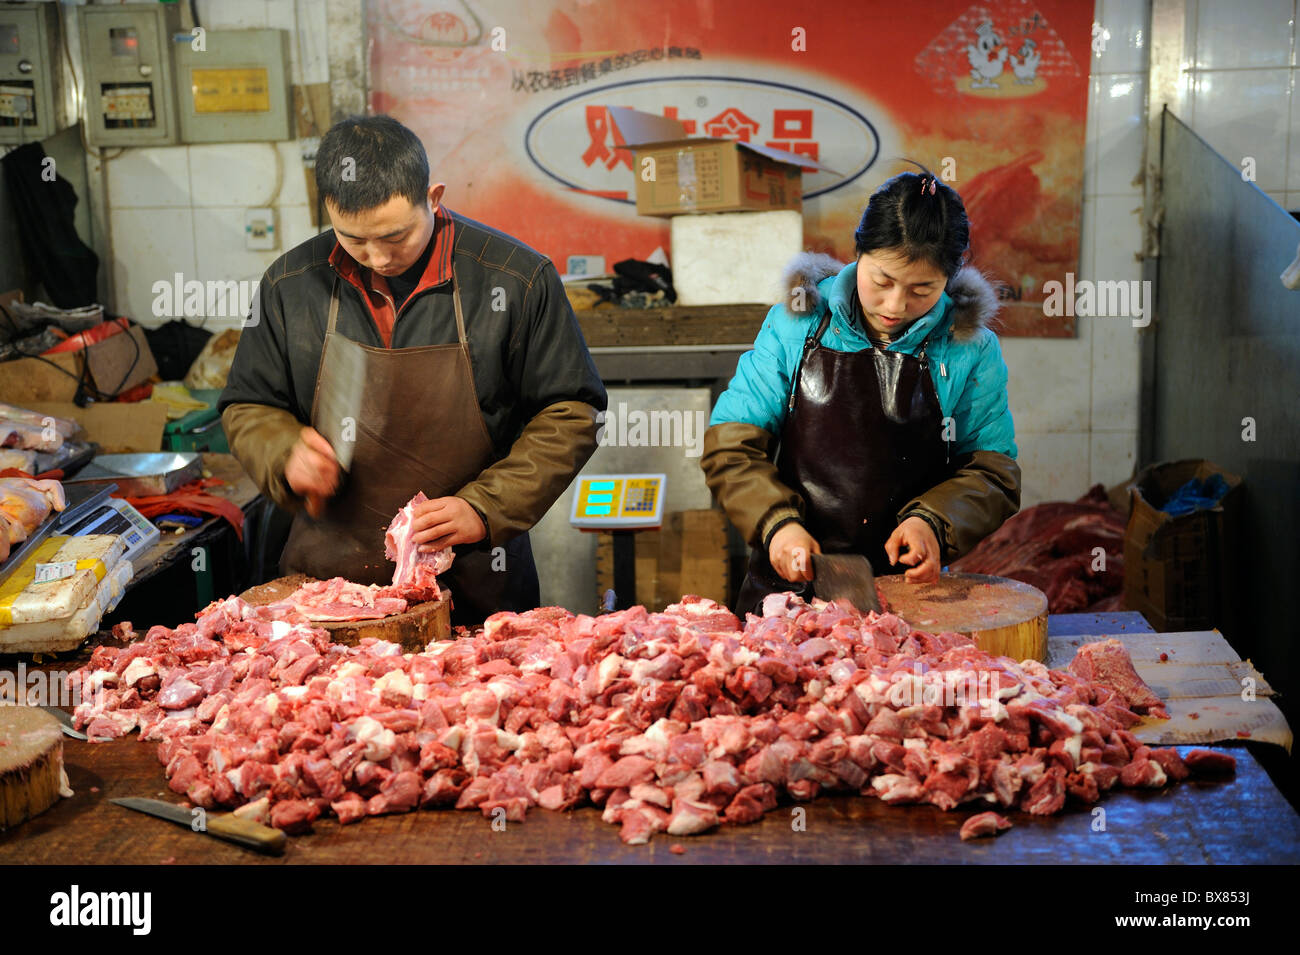 Chinese vendors chop pork at a market in Beijing, China. 10-Dec-2010 - Stock Image